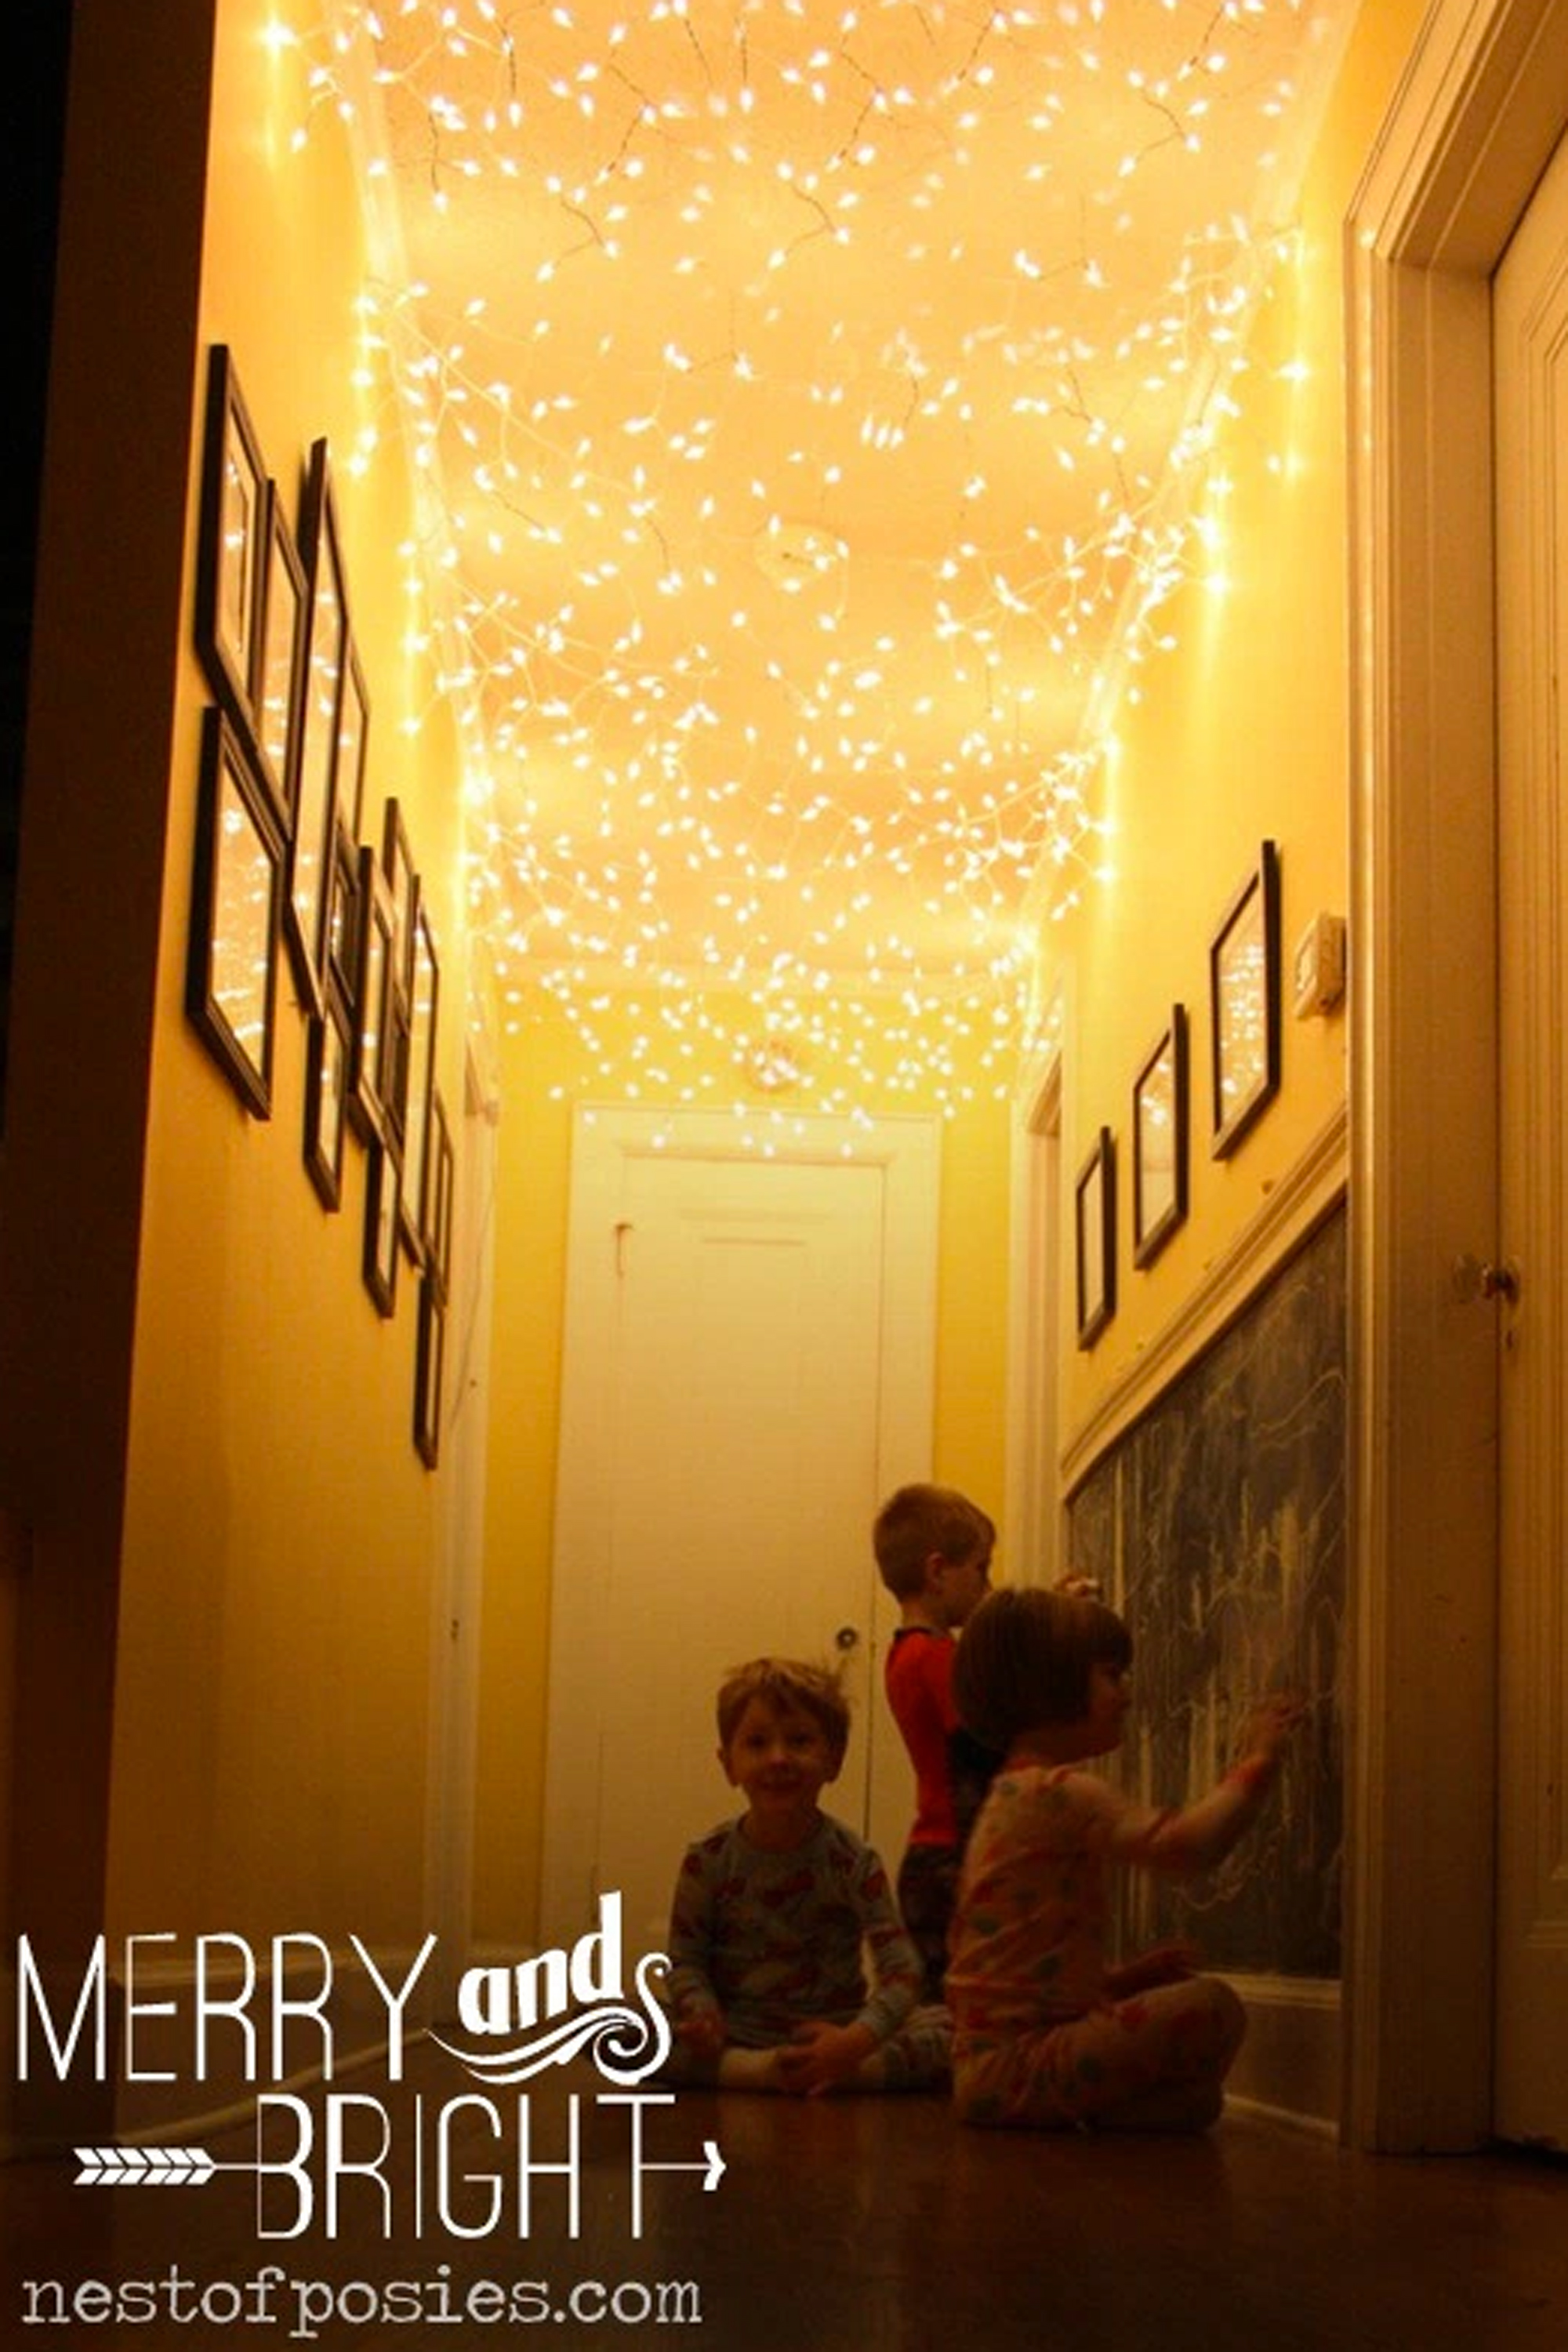 24 Ways To Decorate Your Home With Christmas Lights   Decorating Ideas With  LED Lights Part 12